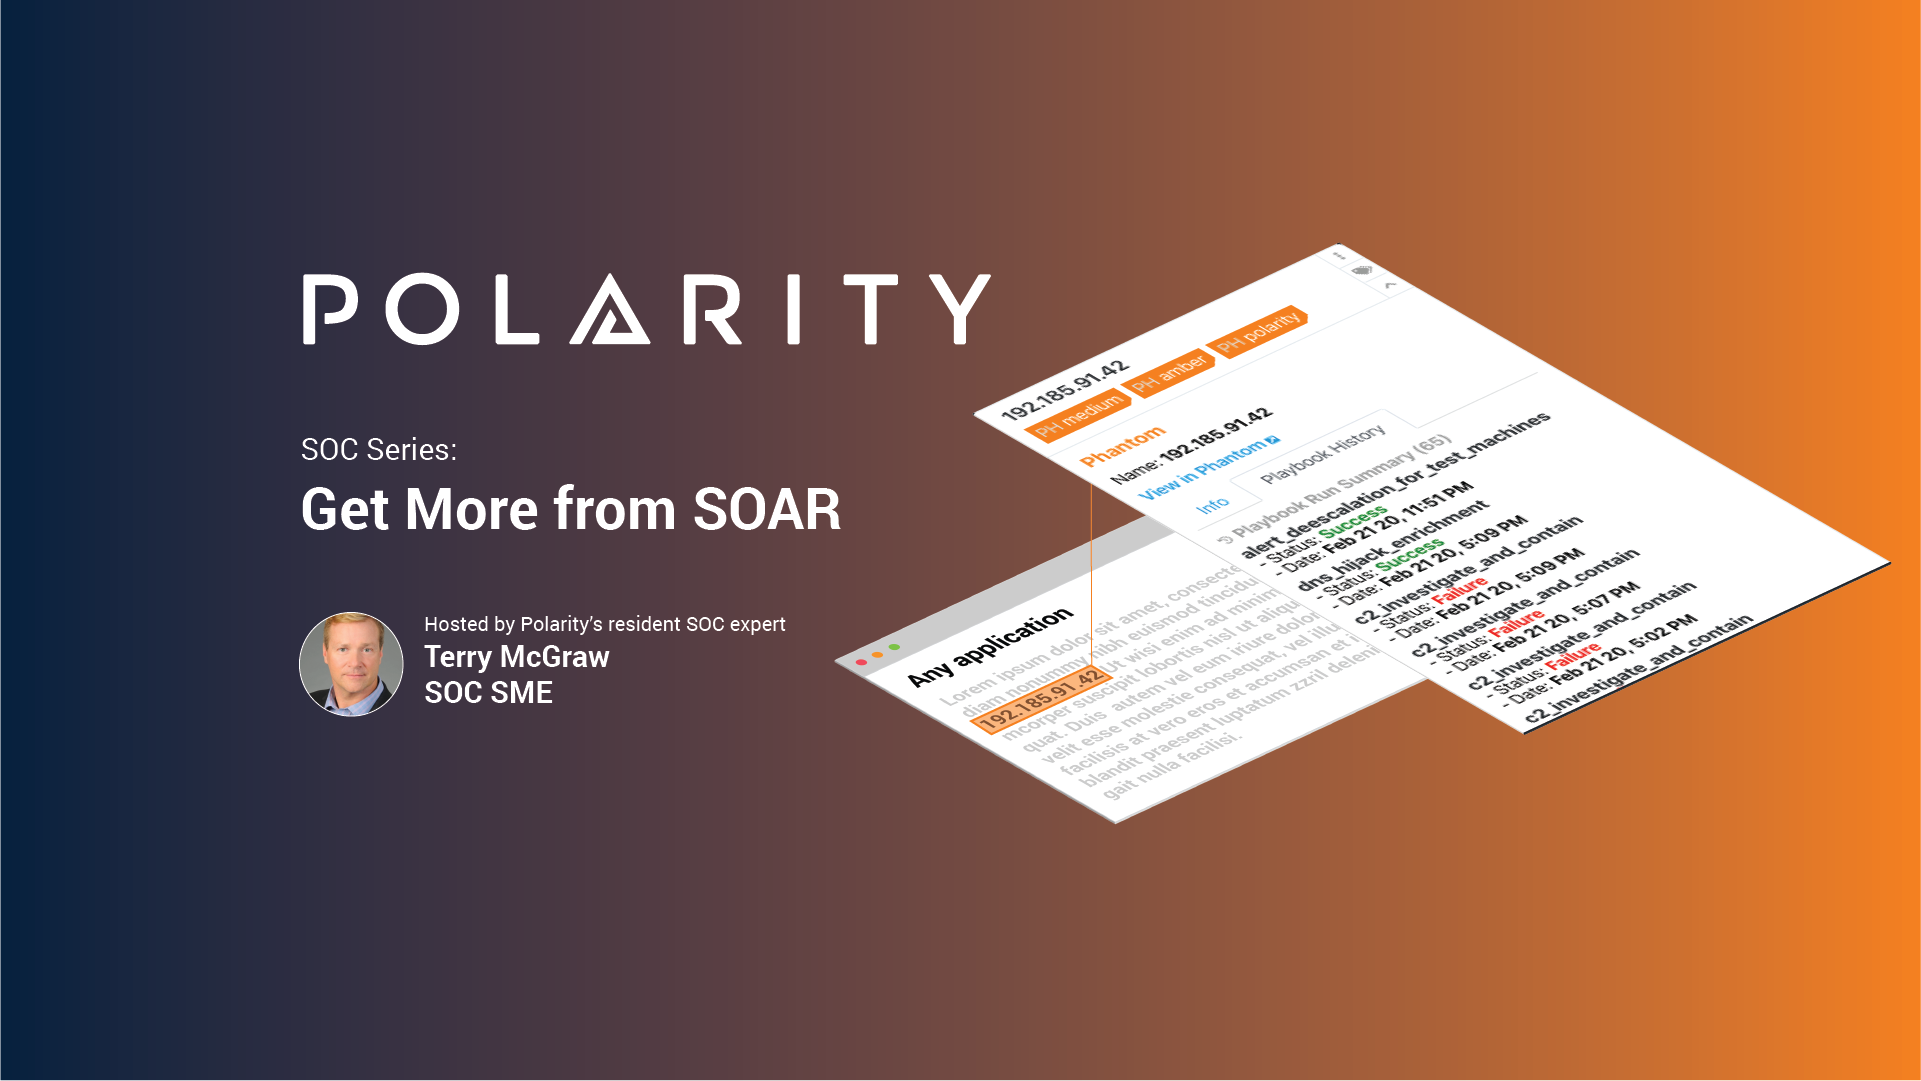 SOC Series: Get More from SOAR cover image